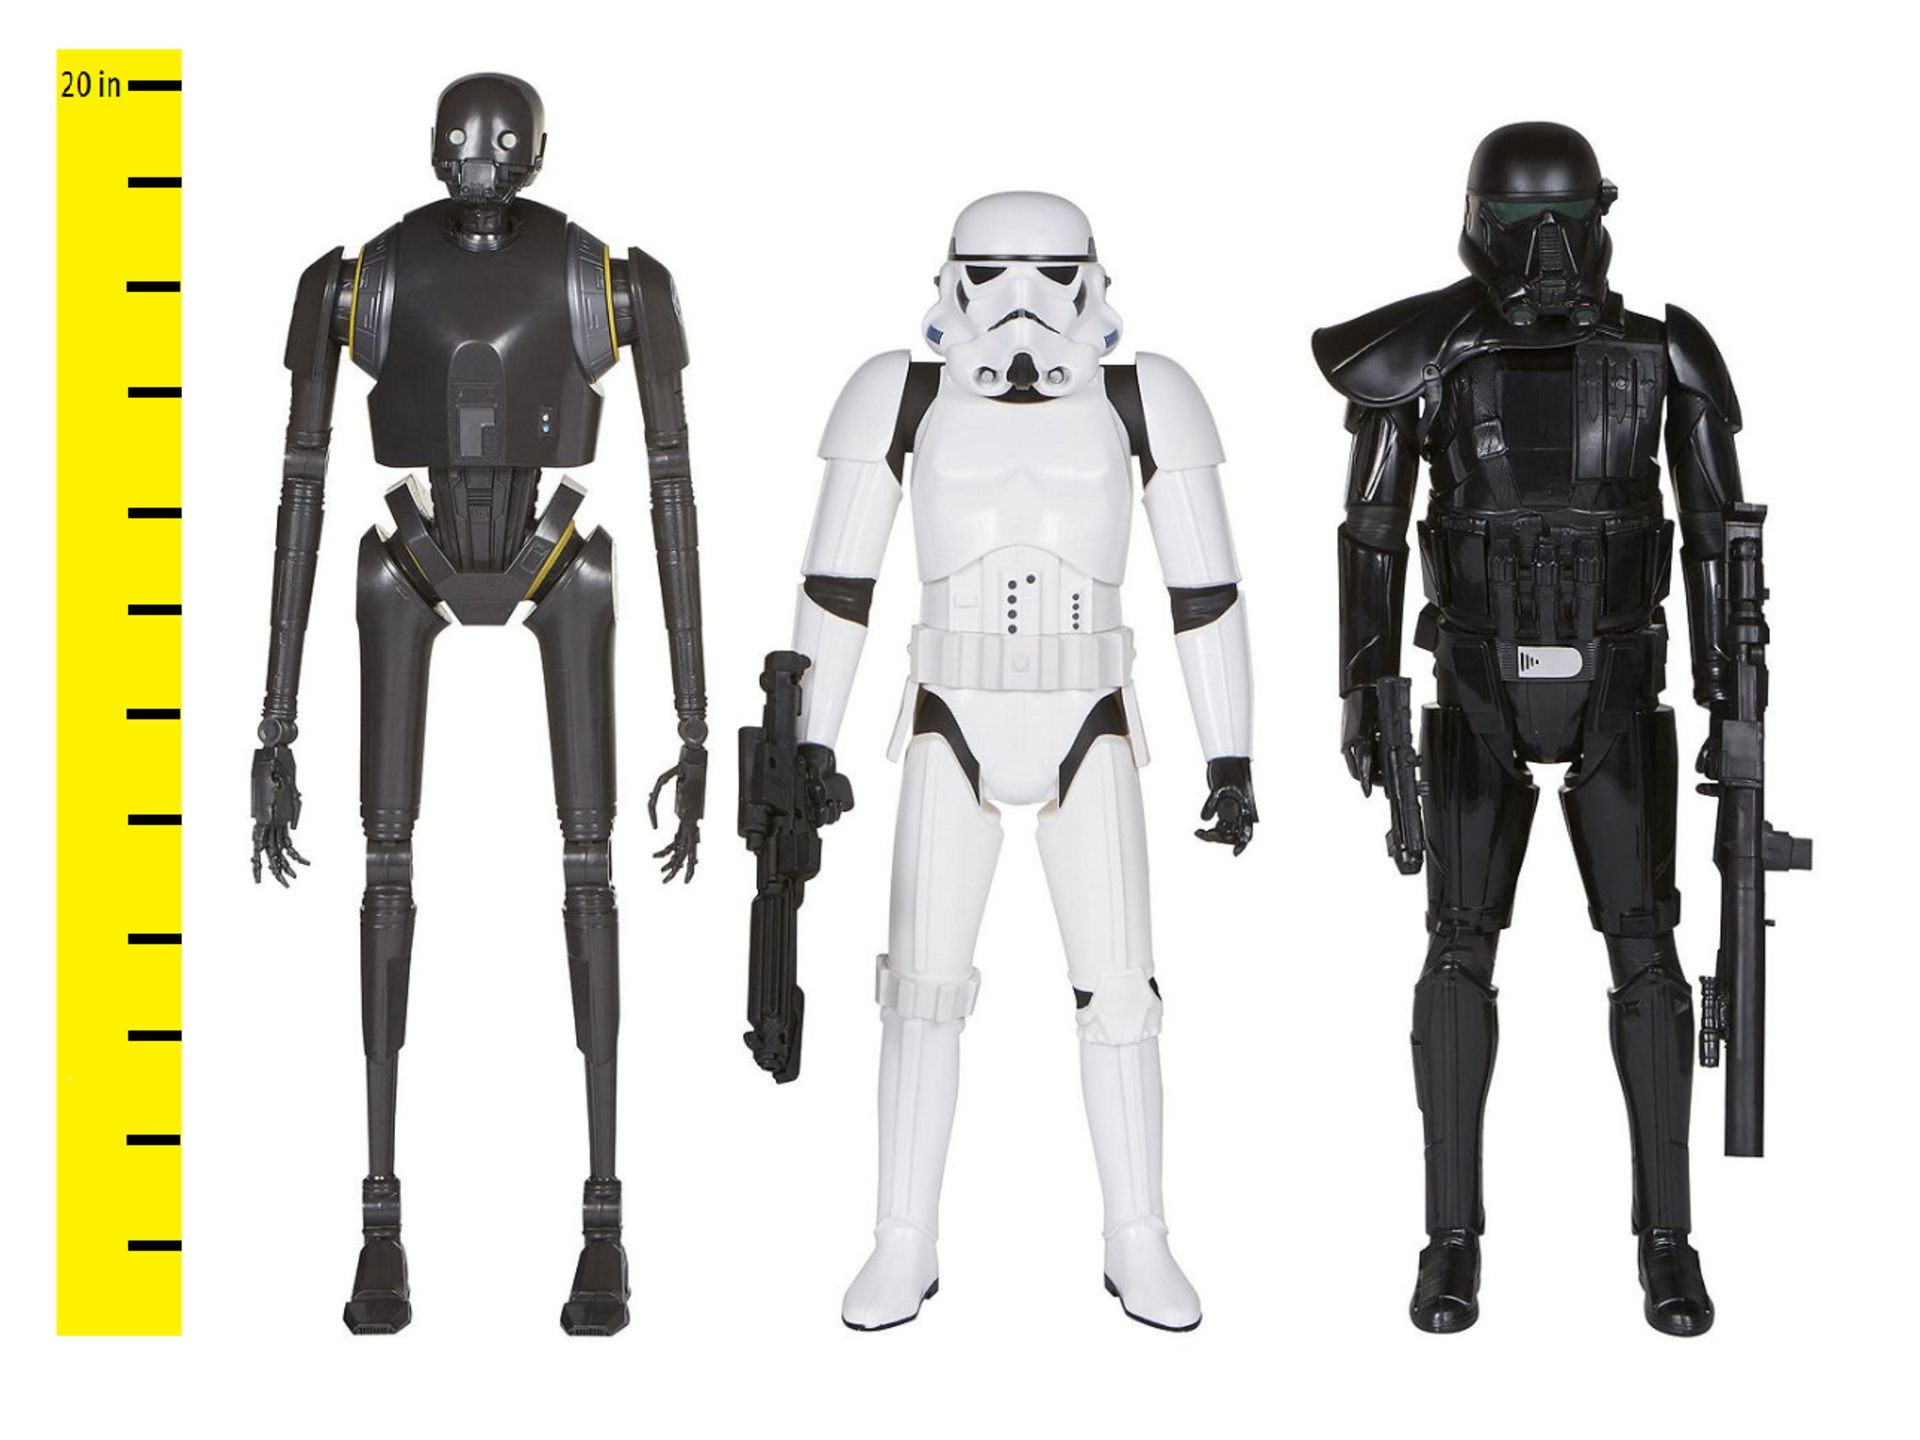 """Lot 12577 - V Brand New Big Star Wars Rogue One Action Figure (18-20"""" Tall) Anthology 3 Pack - ISP £39.49 ("""